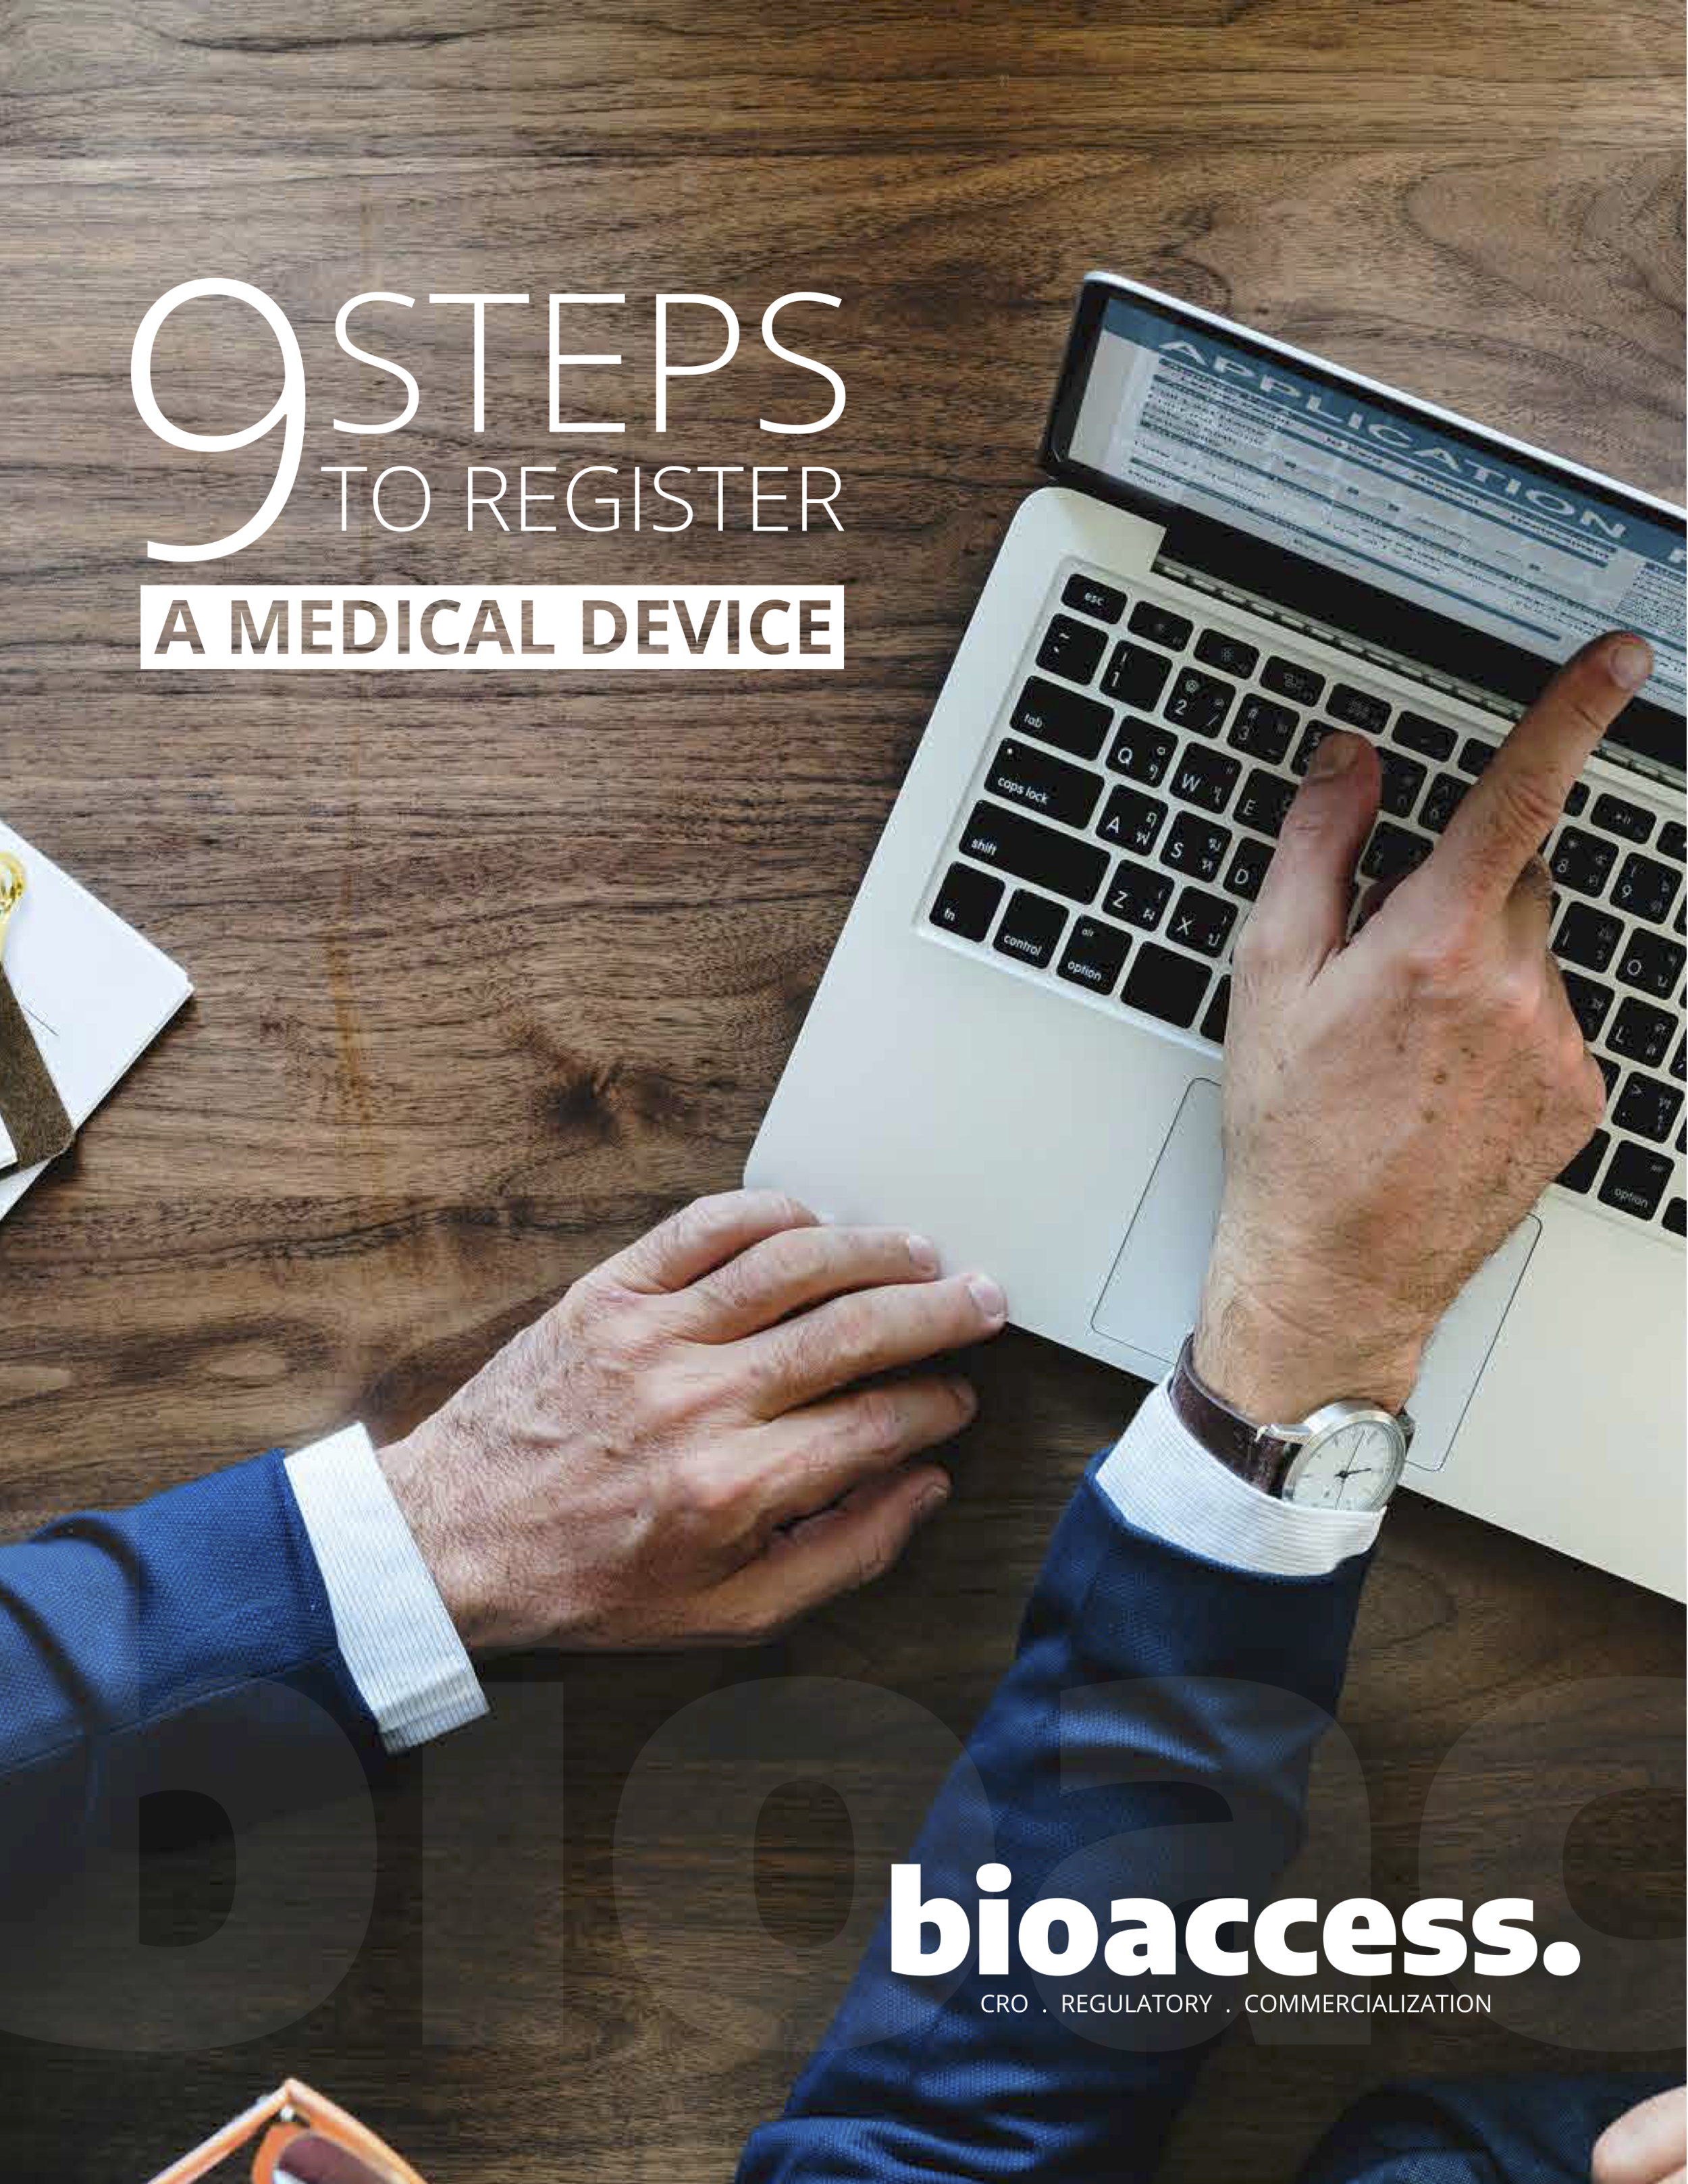 FREE DOWNLOAD - Learn how to register your medical device and obtain marketing authorization in colombia